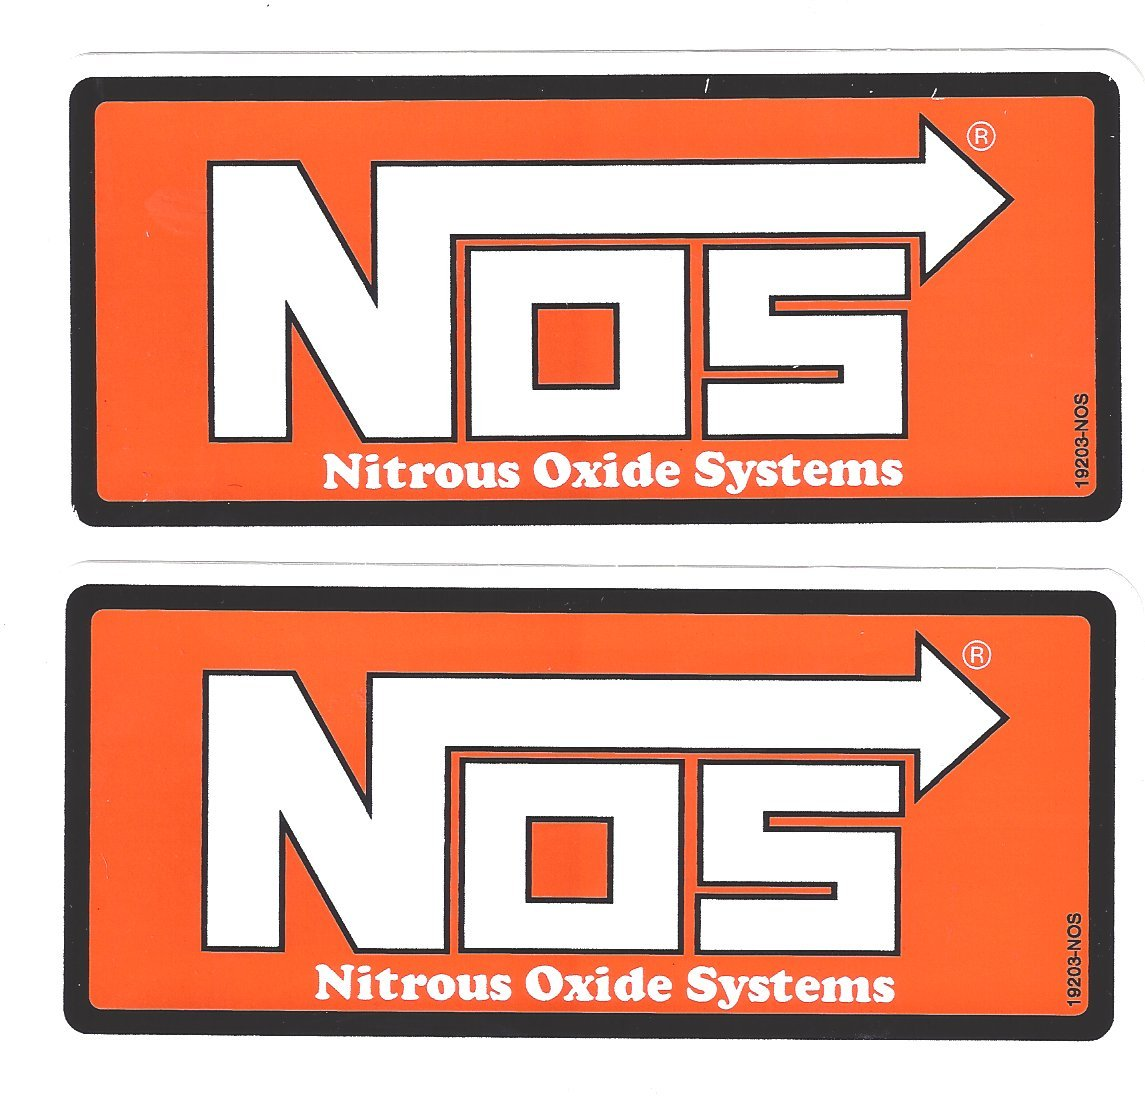 Amazoncom NOS Nitrous Oxide Racing Decals Stickers  Inches - Racing decals